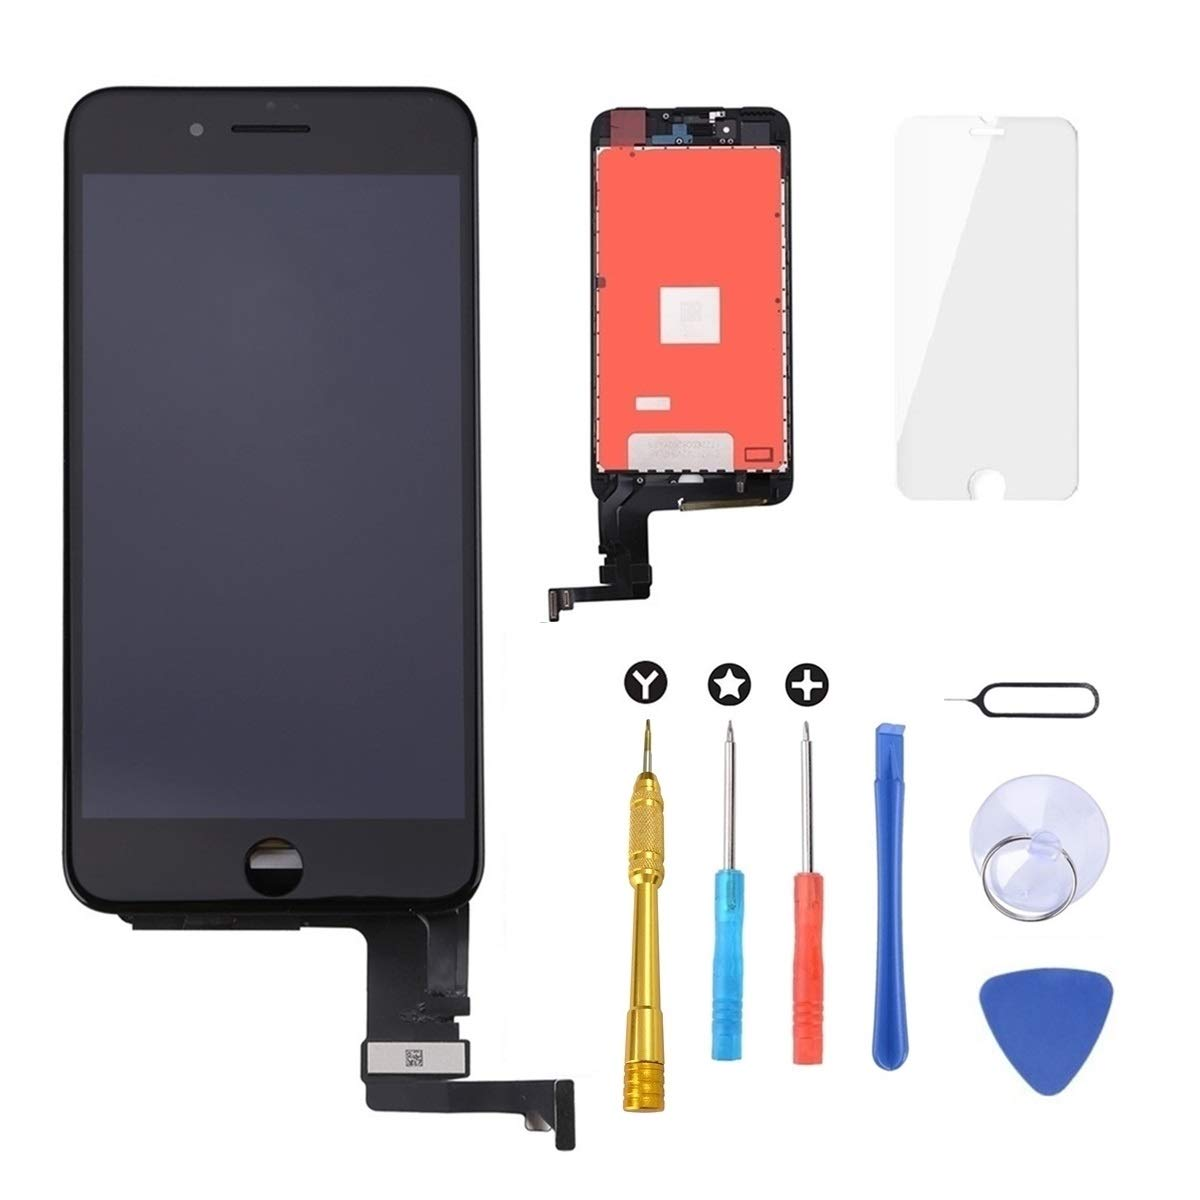 Screen Protector Black Keytas for iPhone 6S Plus Screen Replacement Kit Black 5.5 LCD Compatible with iPhone 6s Plus Touch 3D Screen 5.5 Inch Digitizer Frame Assembly with Free Repair Tools Kit